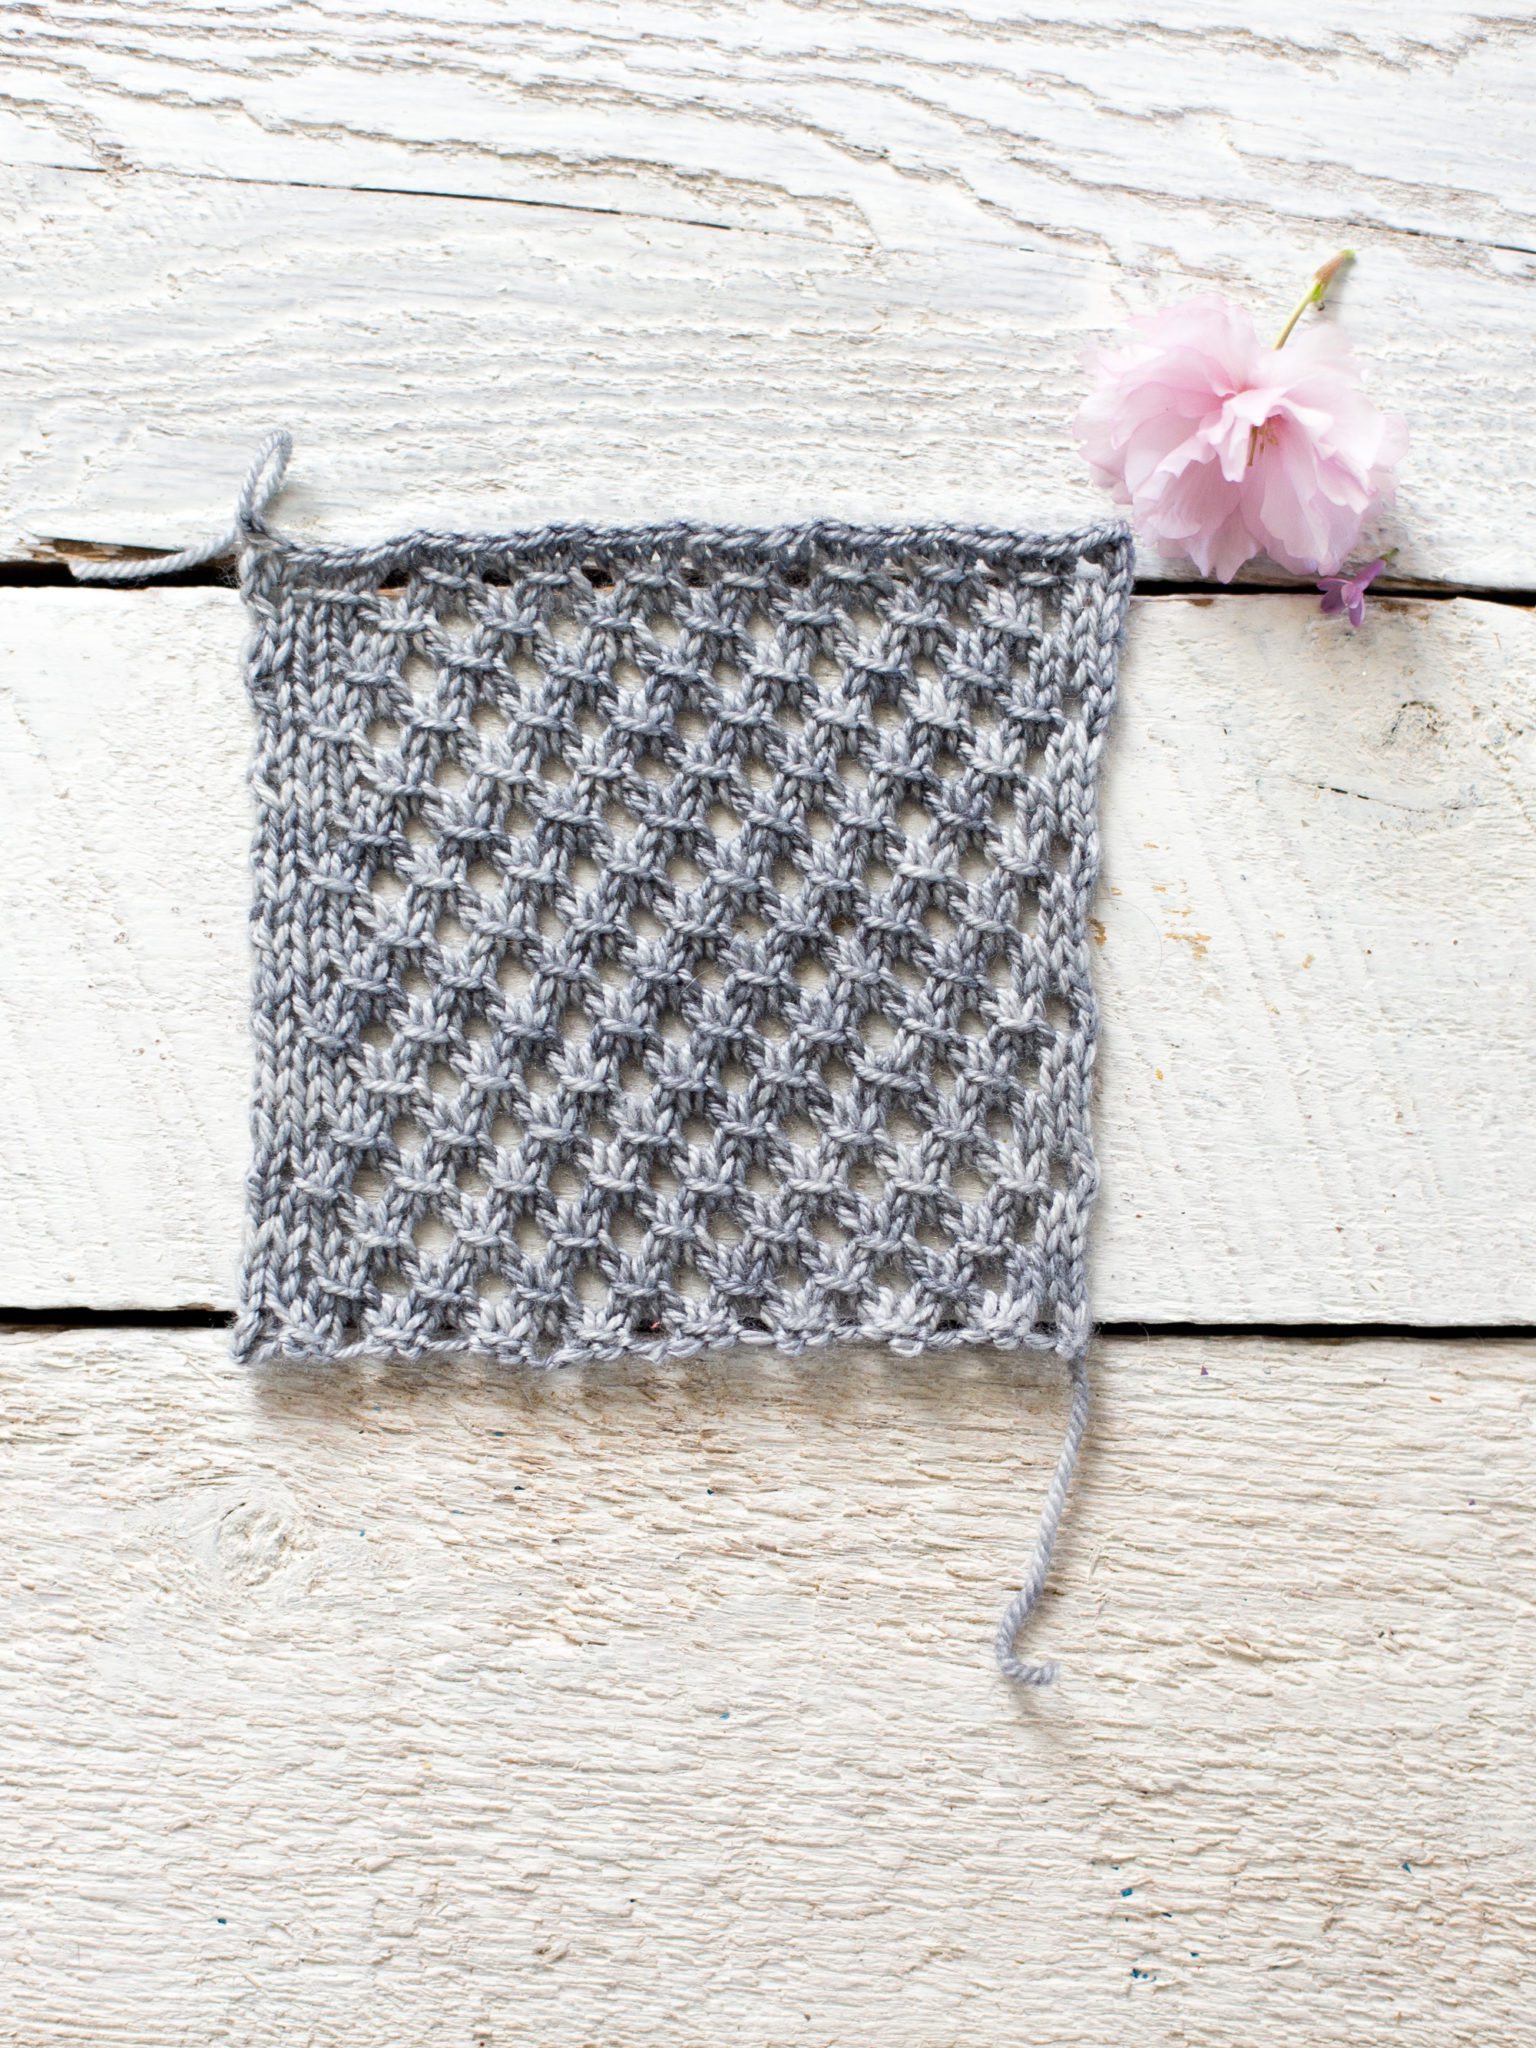 How To Make An Easy Lace Knit Shawl Pattern Flax & Twine